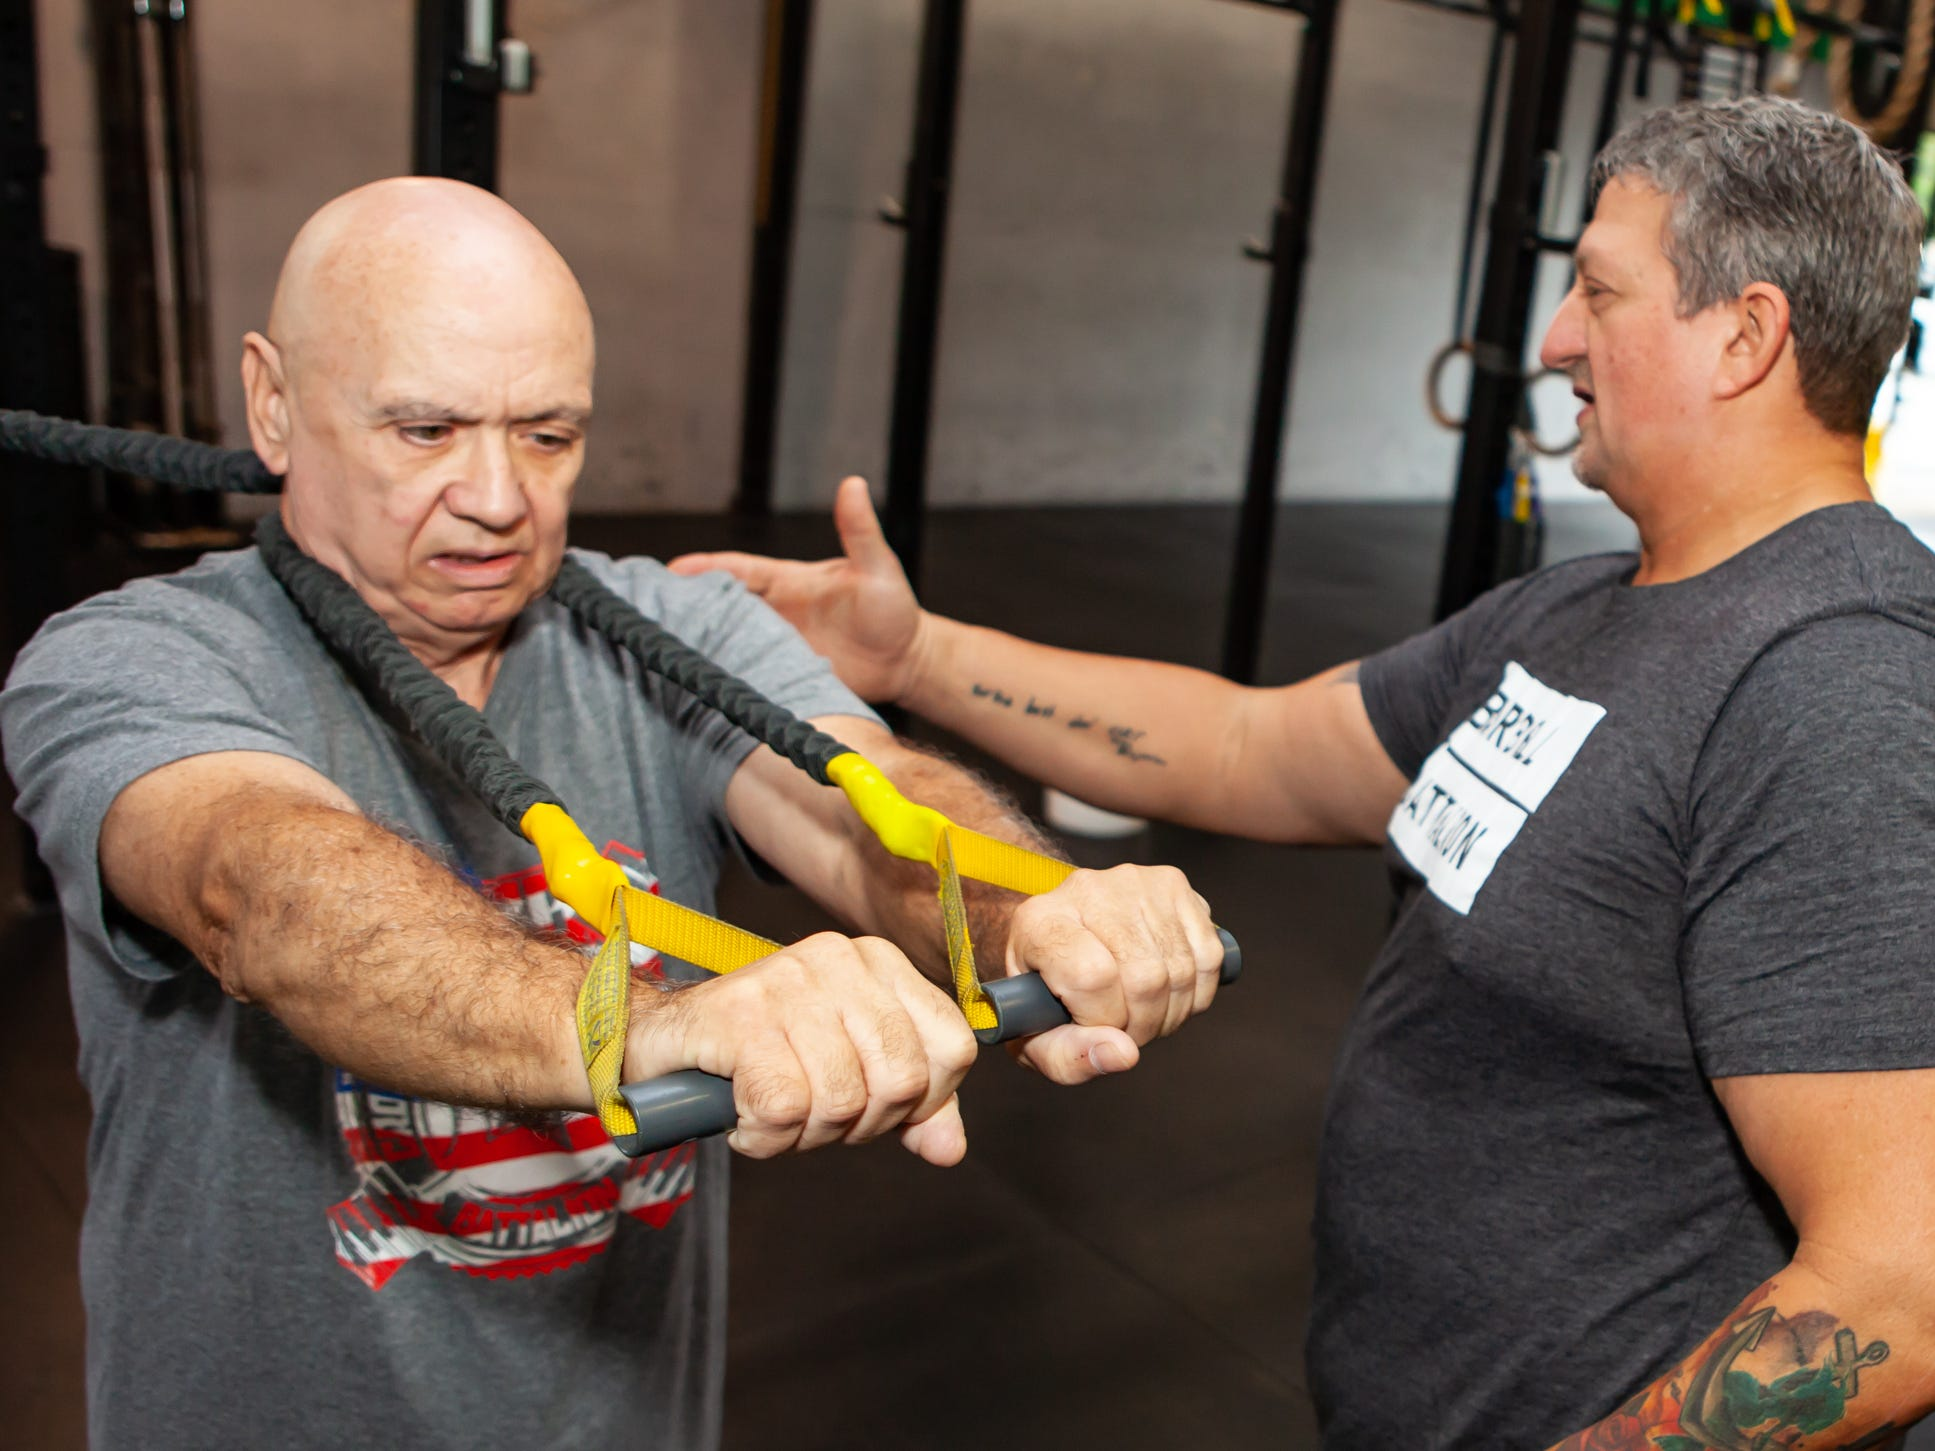 Alton Miles works out with son Tim Miles at CrossFit Barbell Batallion in downtown Murfreesboro.